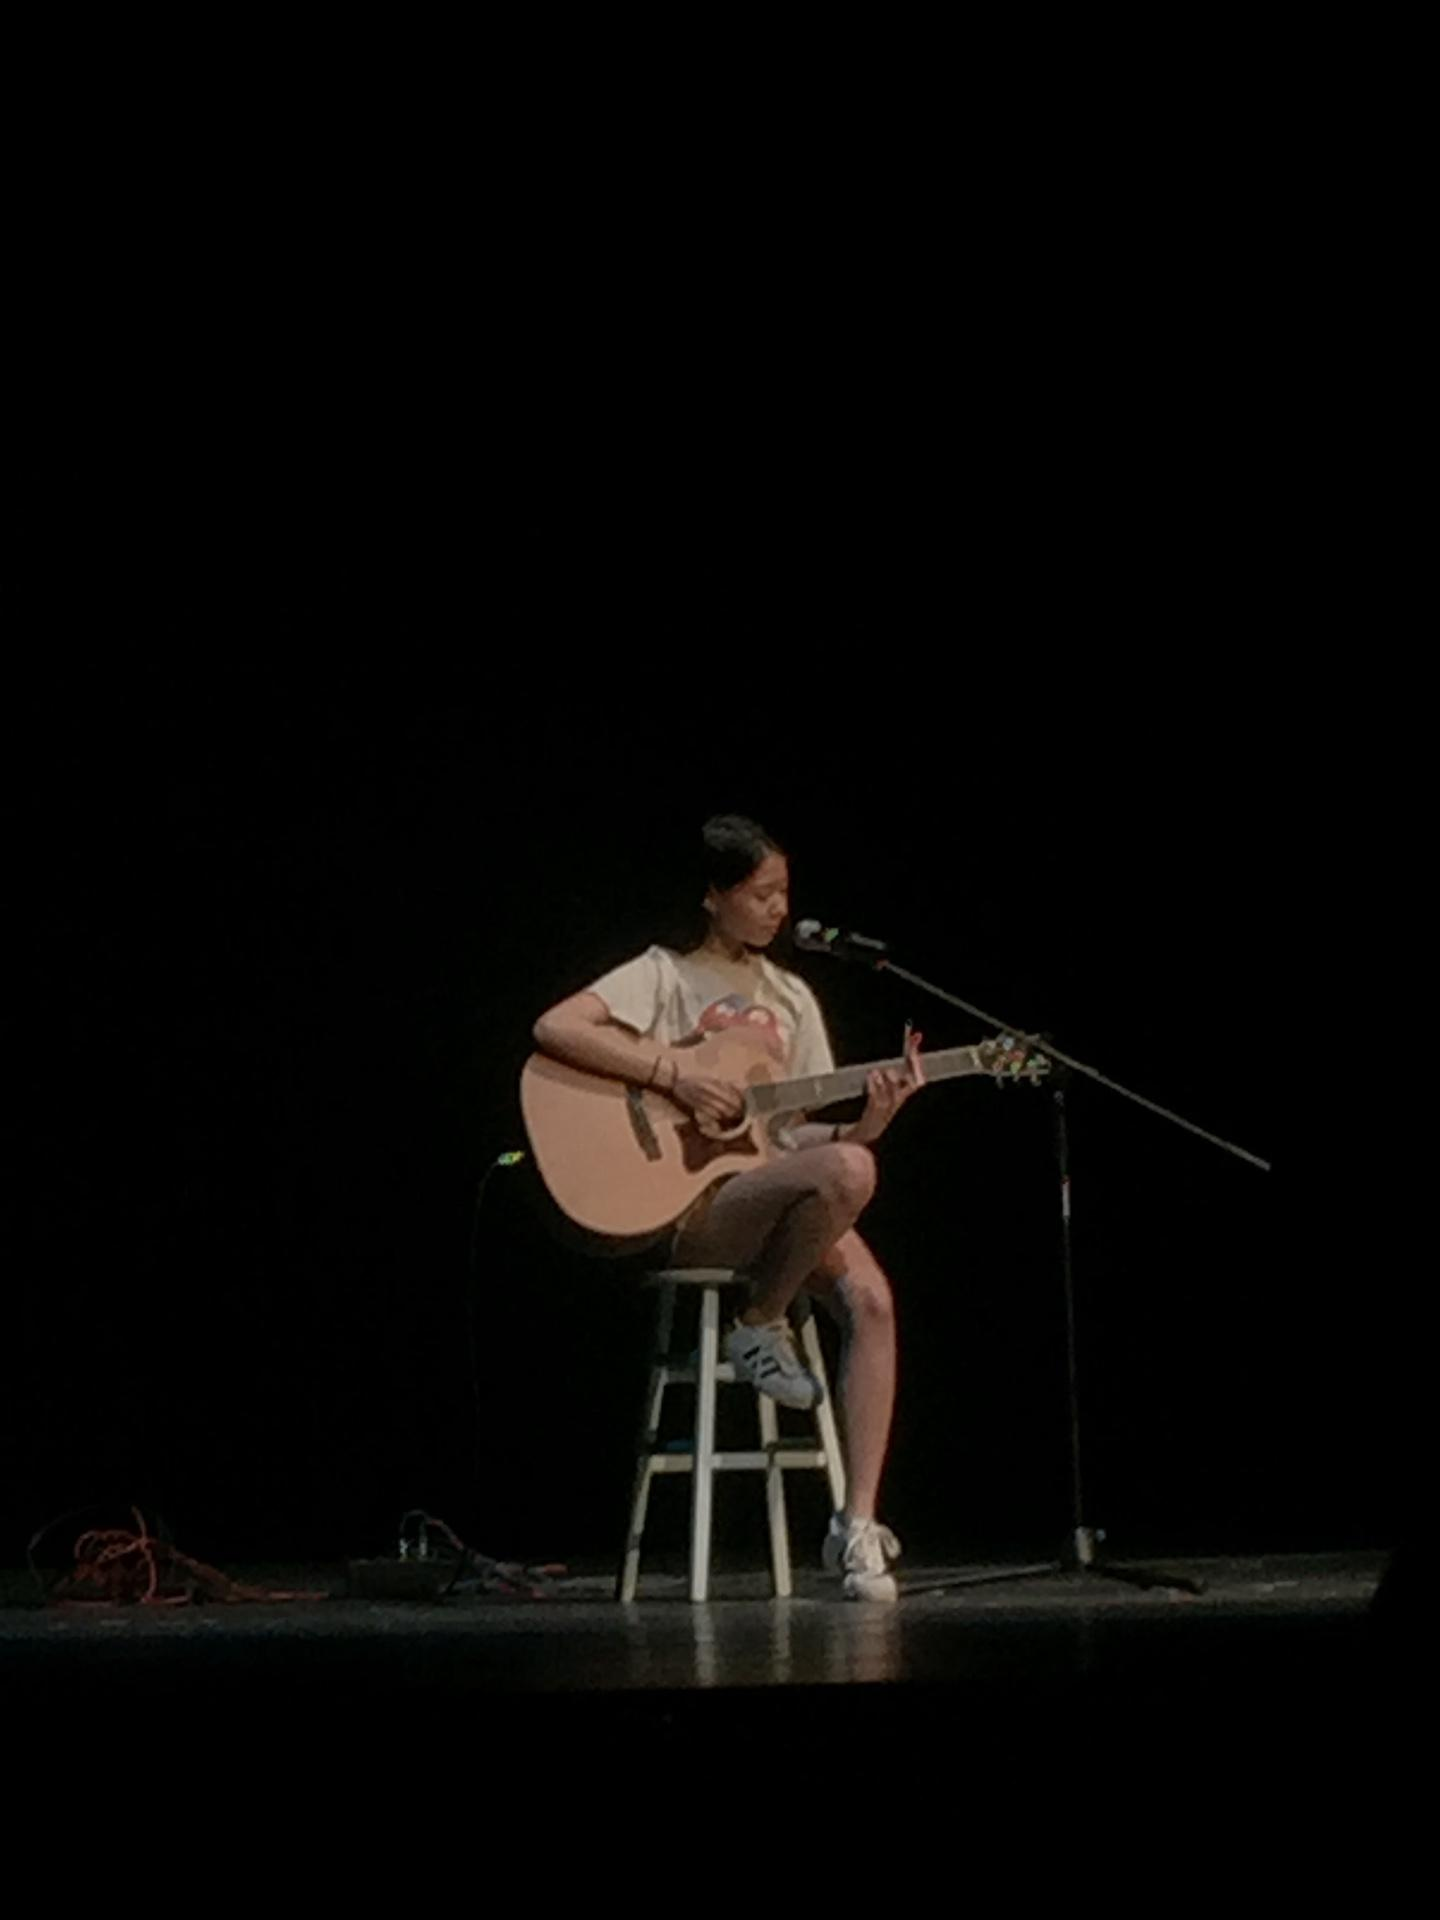 Isabelle Liu (junior) plays and sings The Man on the guitar 3RD PLACE